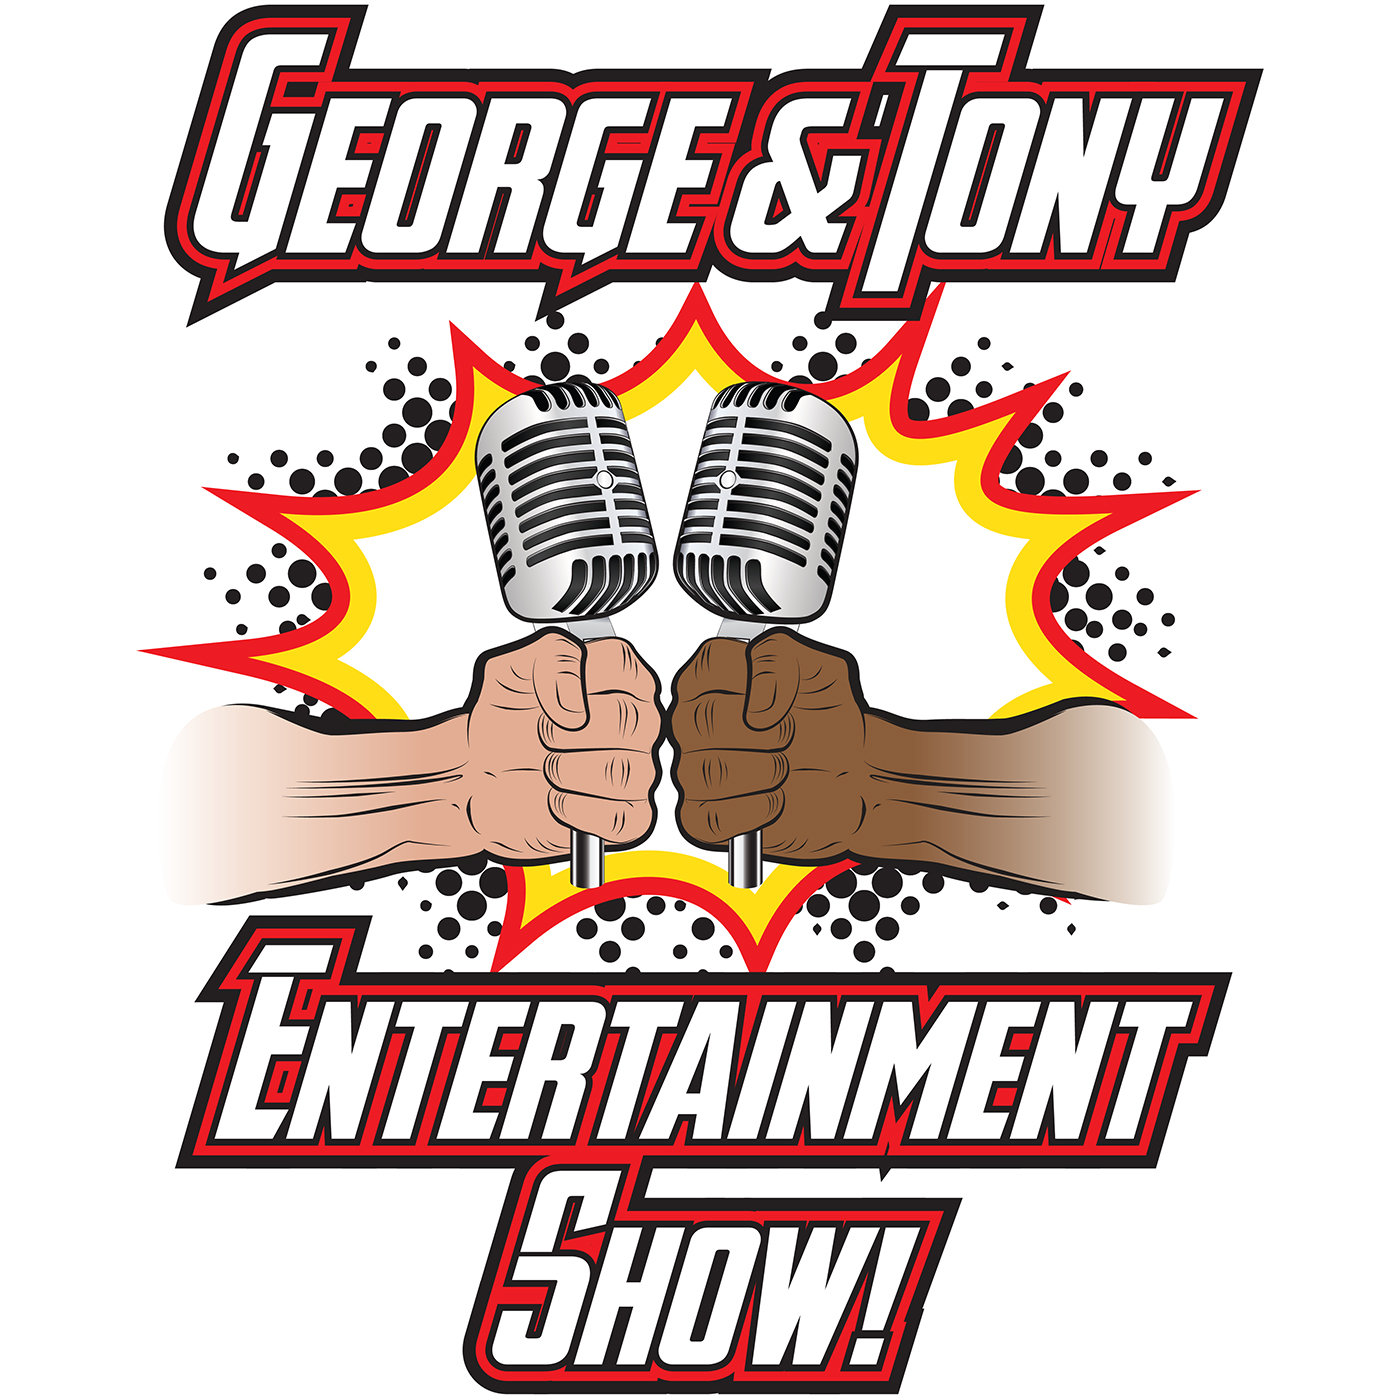 George and Tony Entertainment Show #112